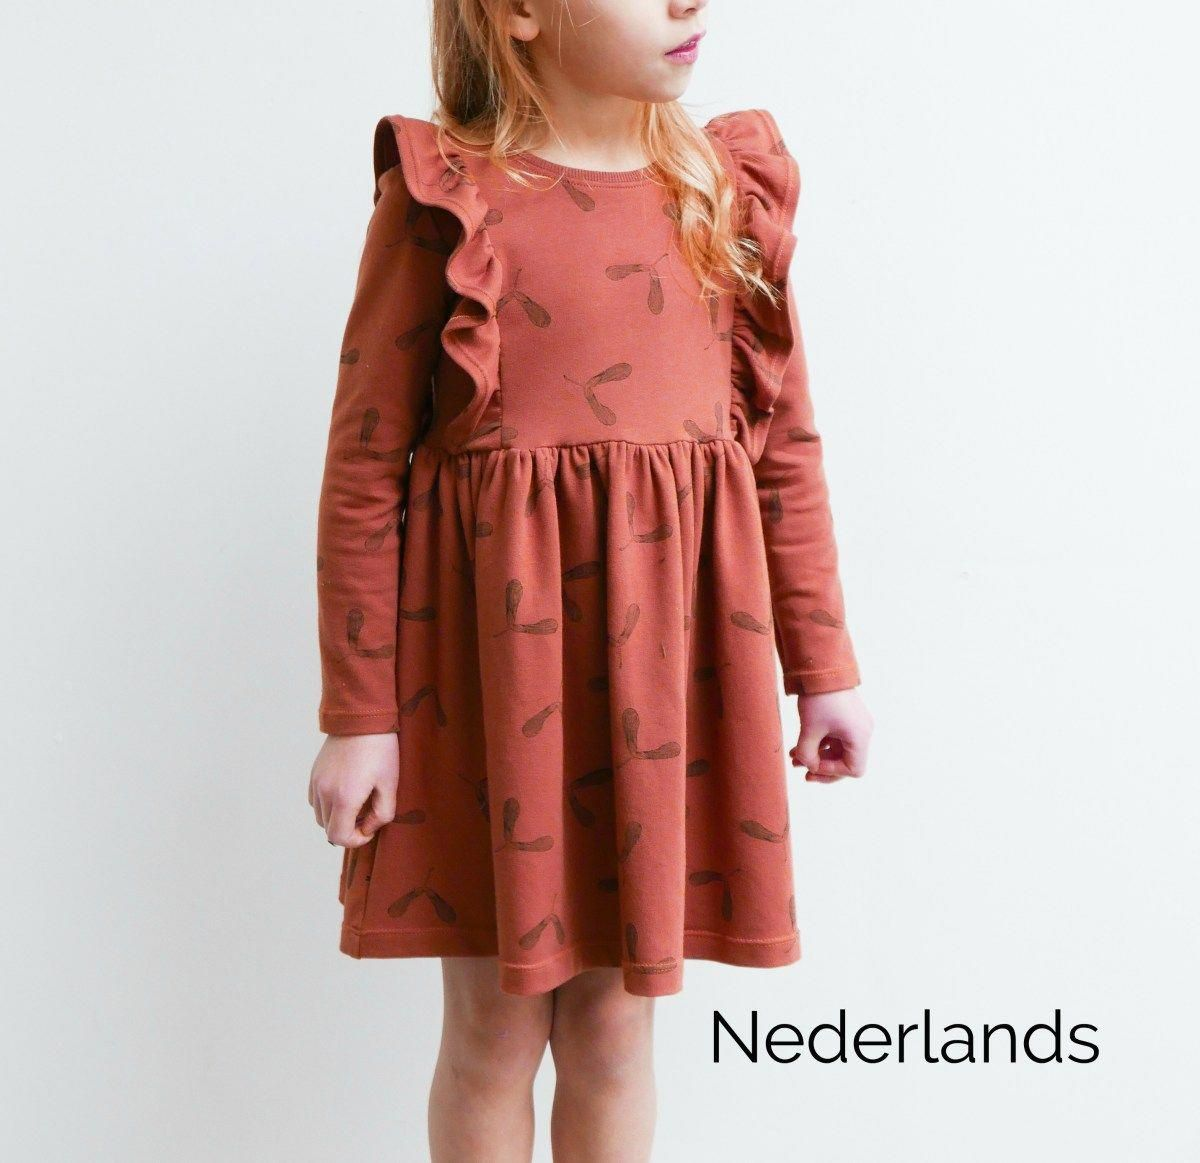 b6f3488e7b467a Millie jurk – PDF patroon 2-12 jaar – Mix it Make it  kidsfashiondiy ...